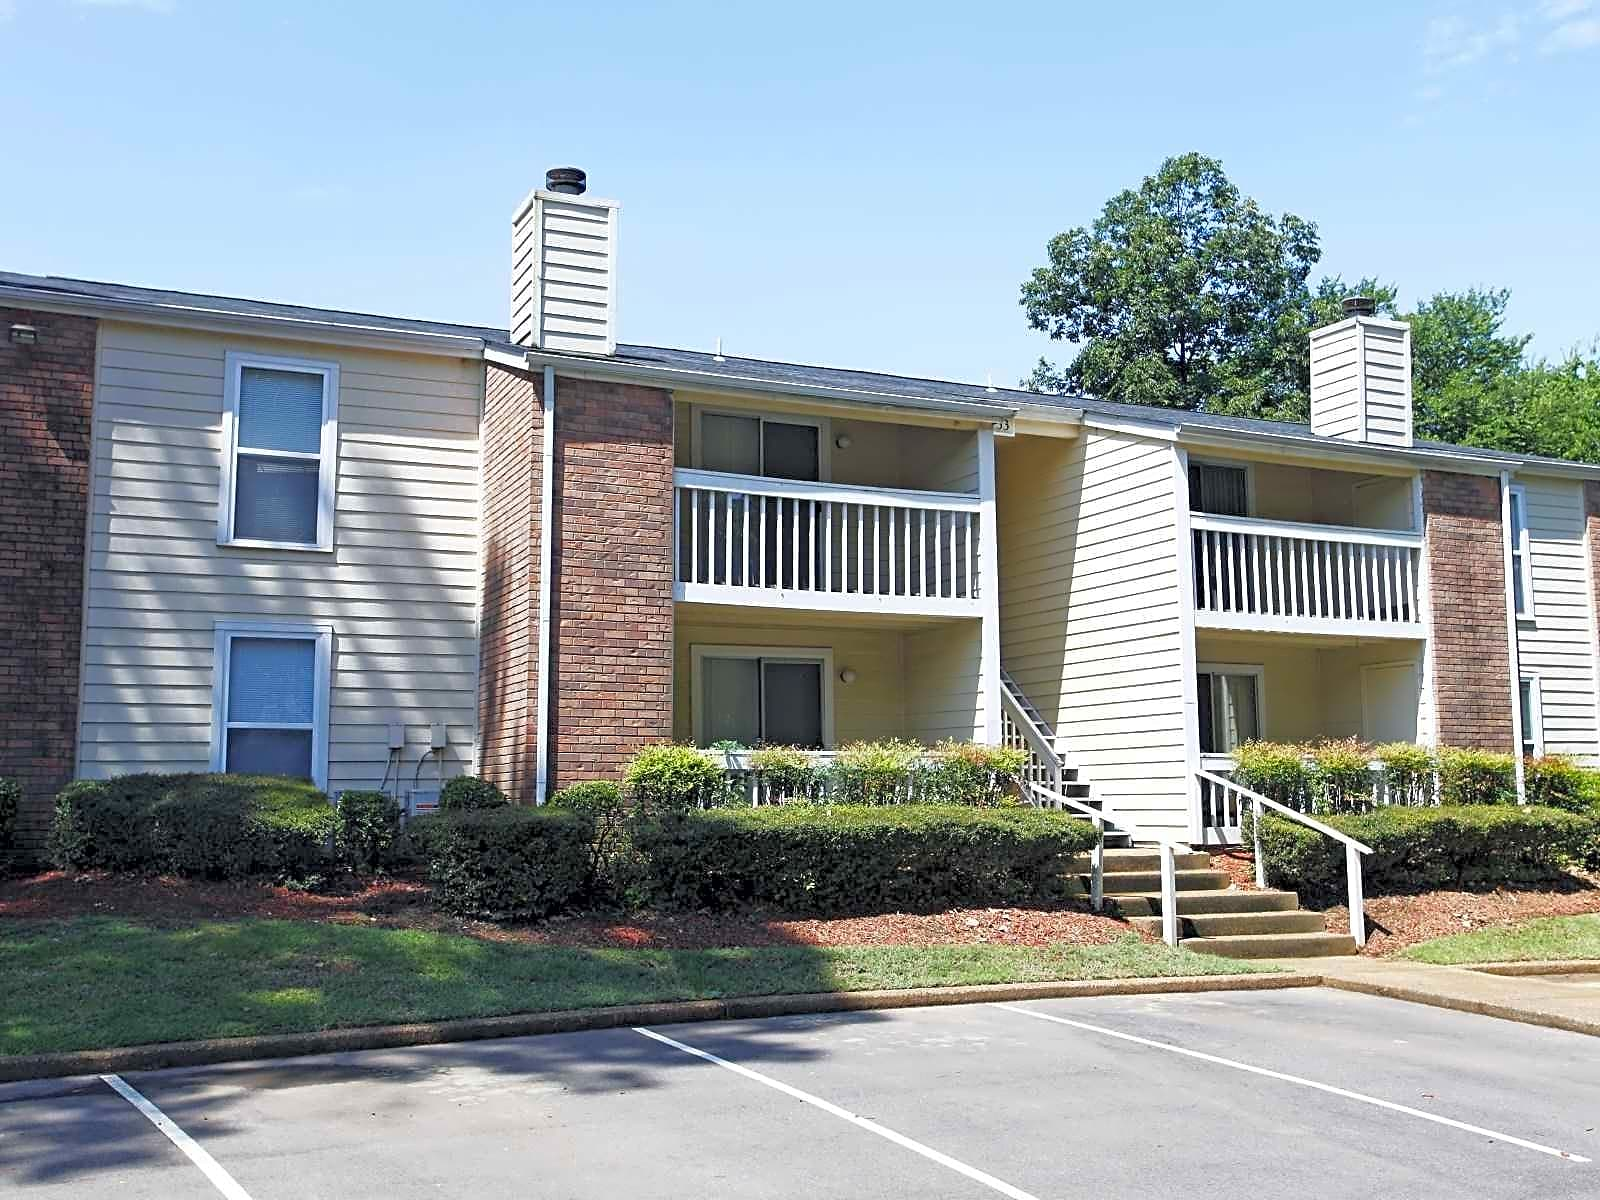 Pet friendly apartments in memphis tn pet friendly for Small towns in tennessee near memphis